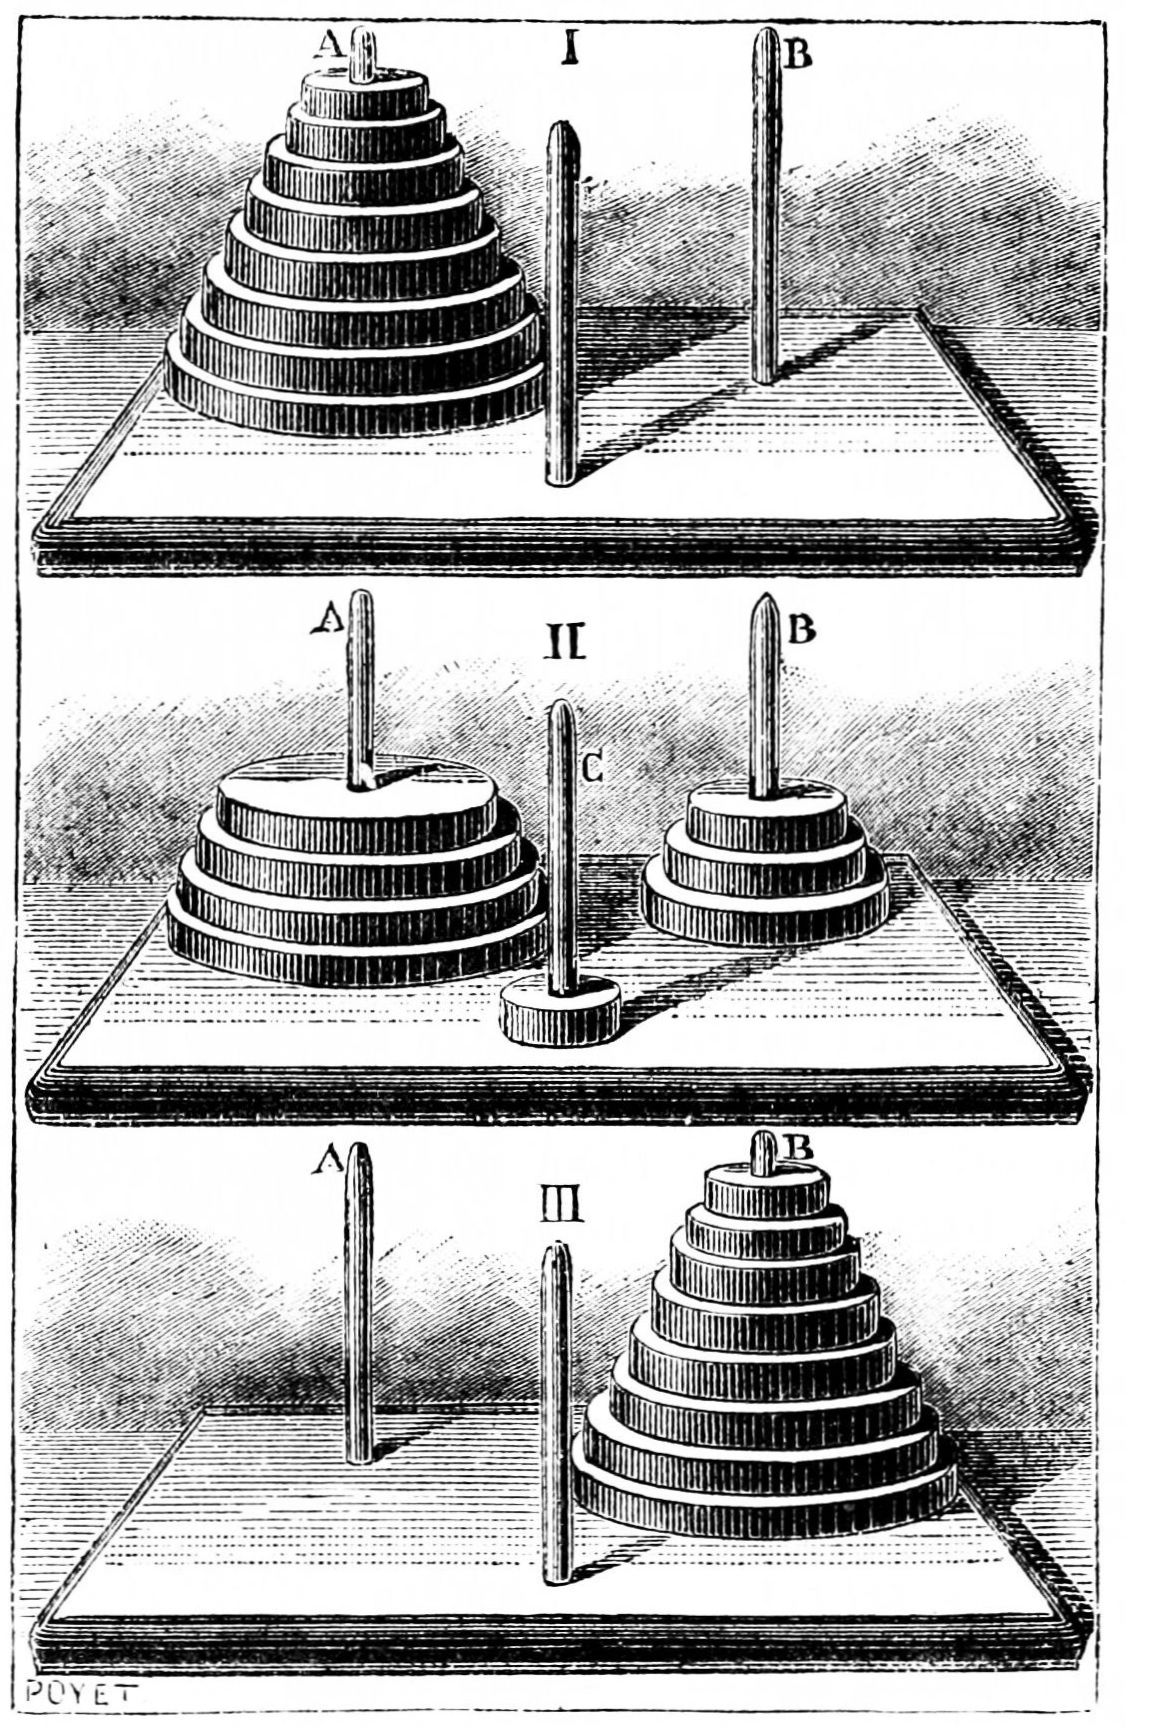 PSM V26 D464 The tower of hanoi.jpg